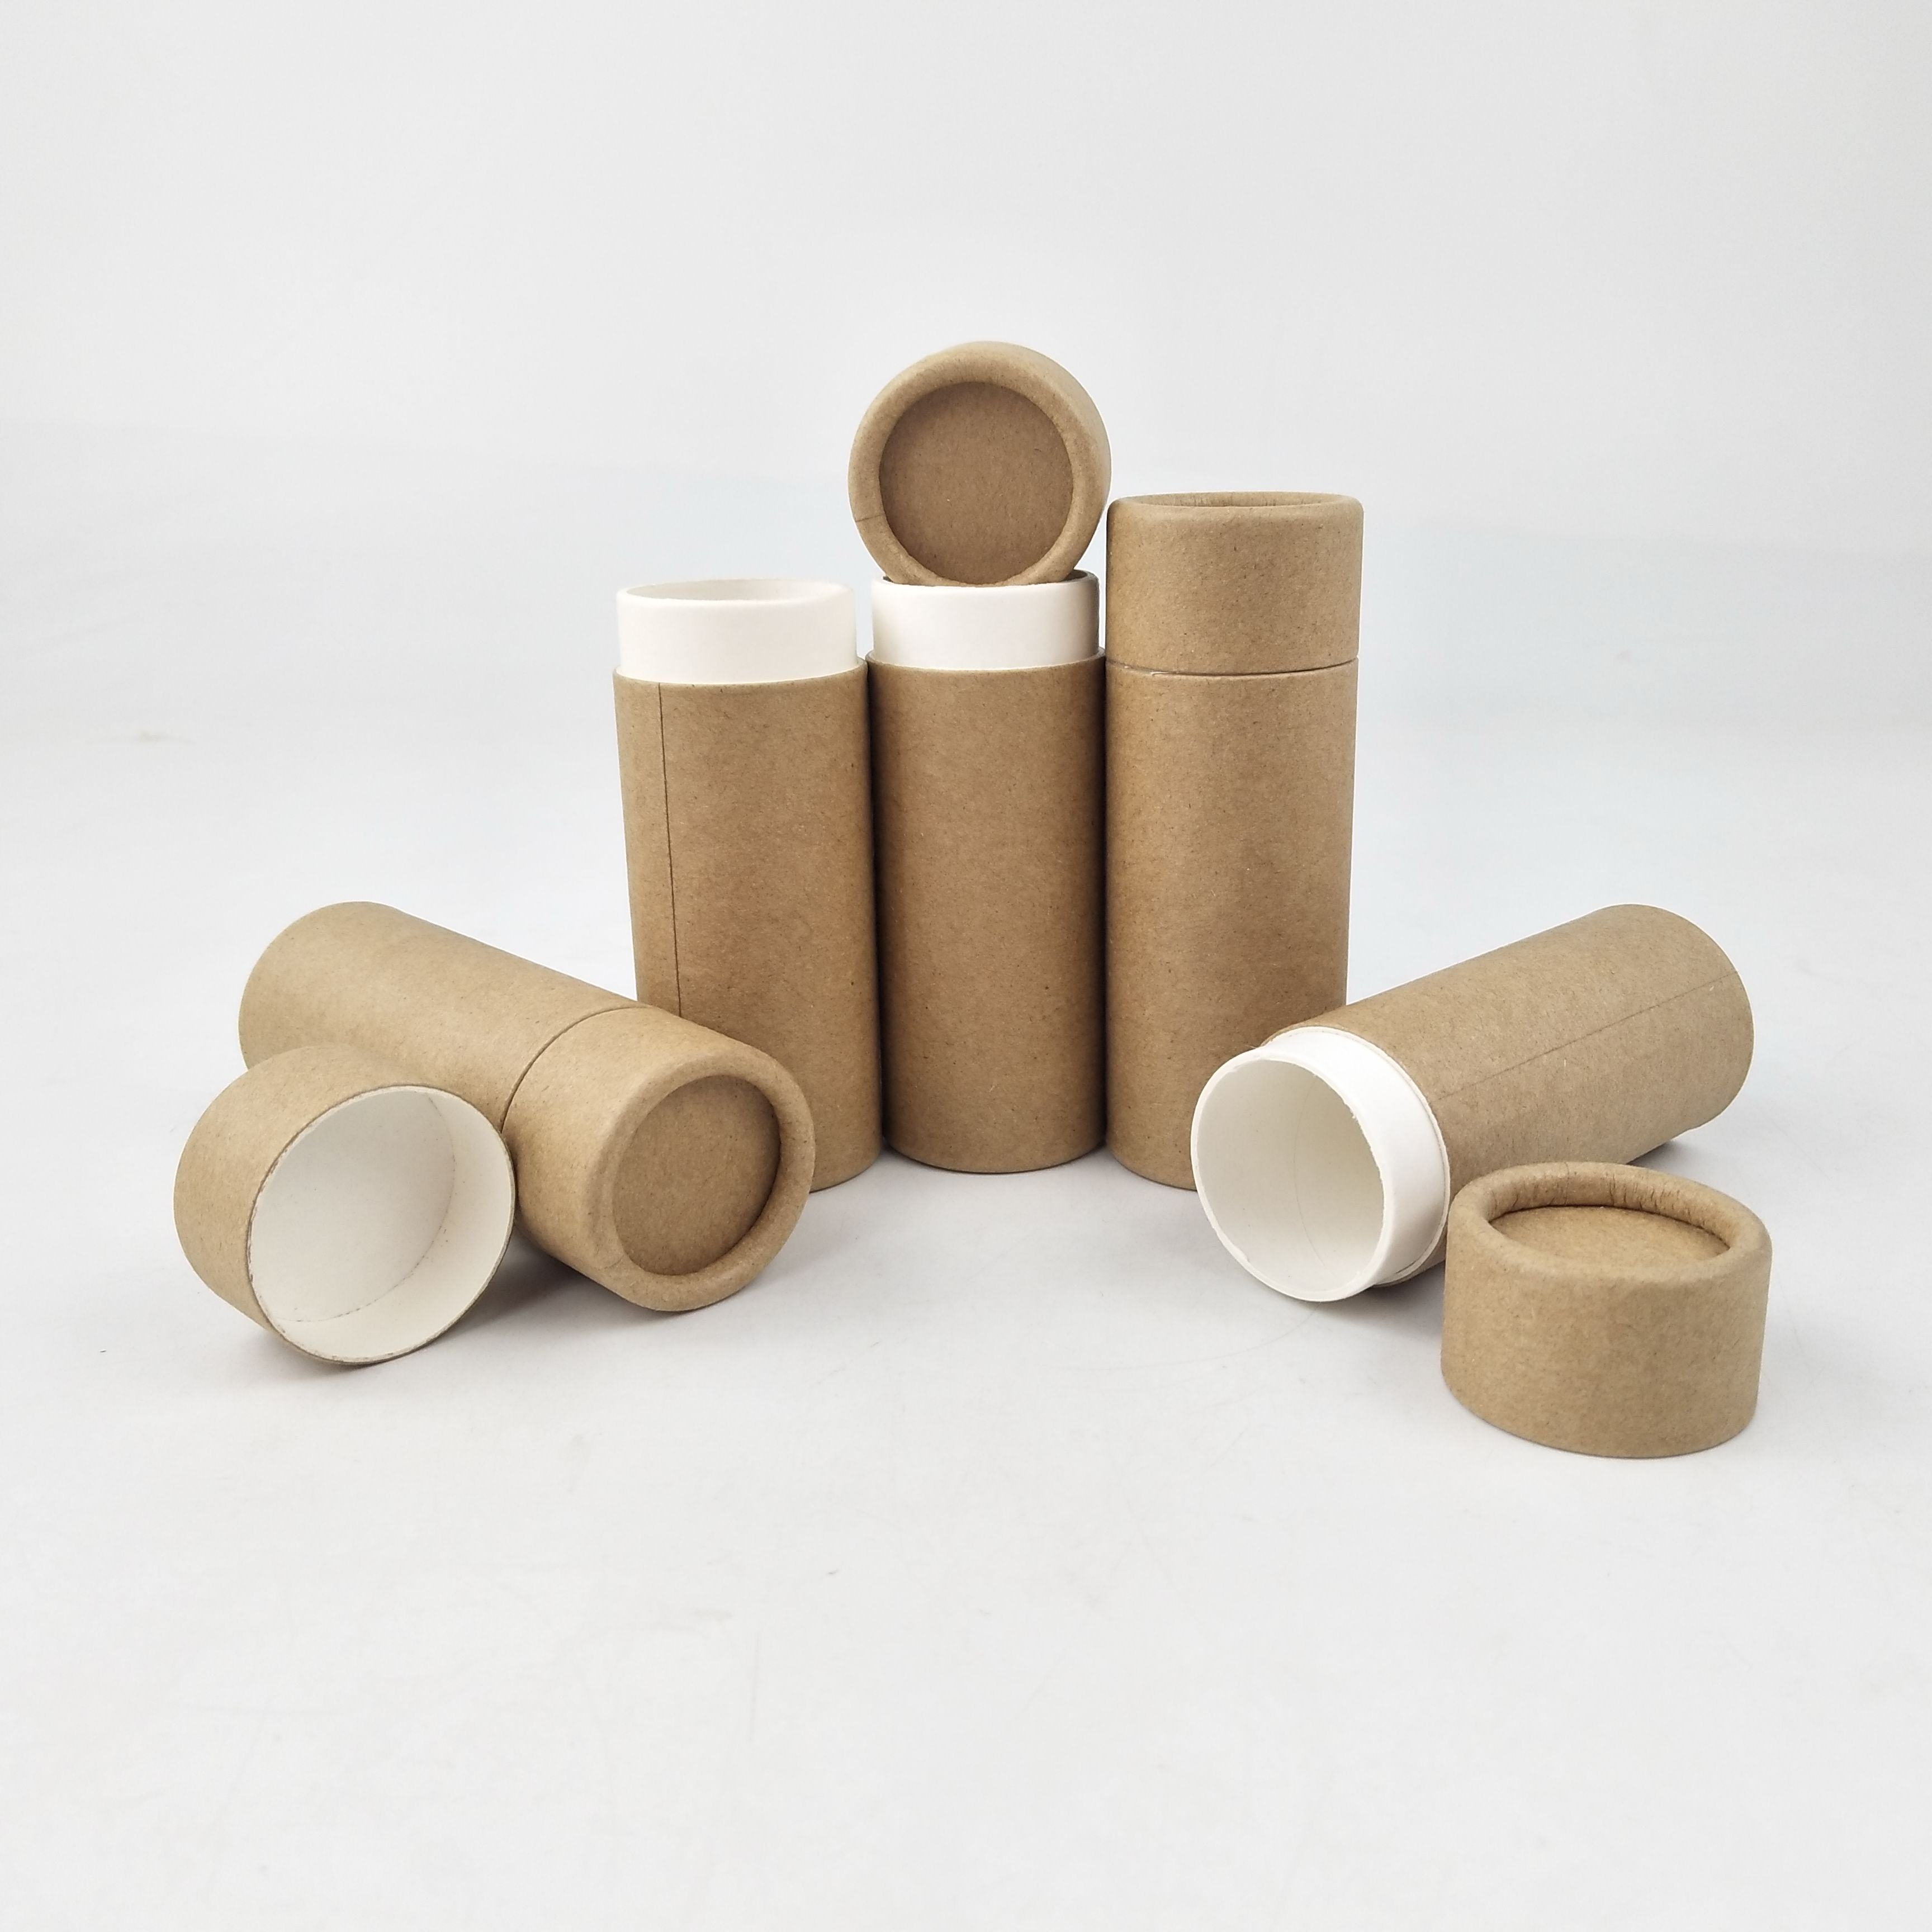 100% biodegradable packaging cardboard push up deodorant containers kraft lip balm paper tube